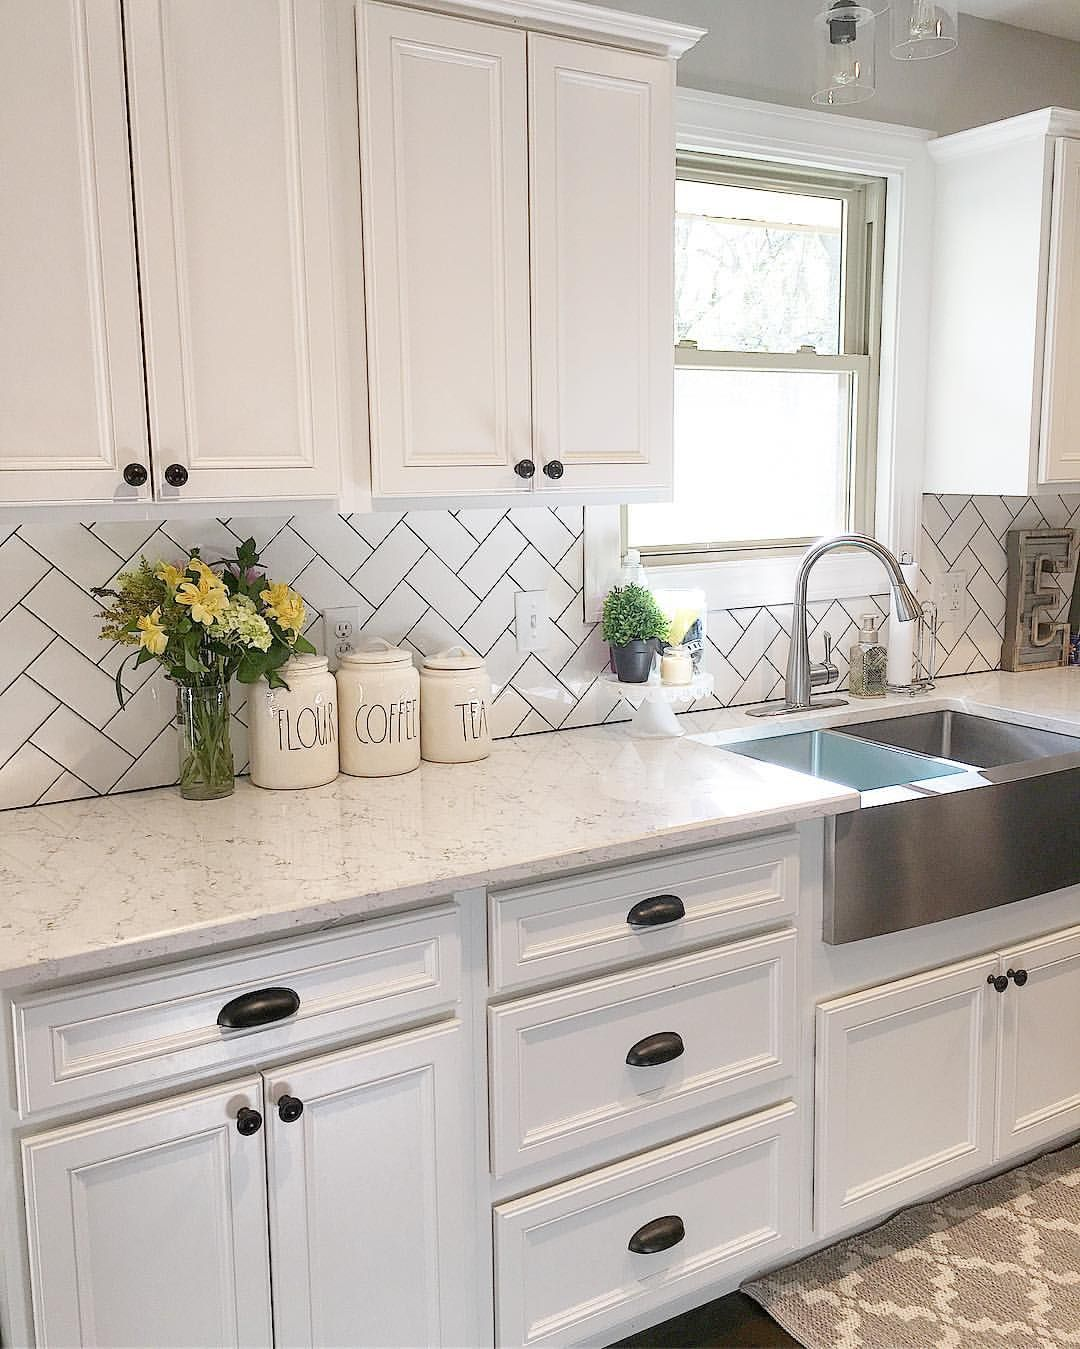 White Kitchen, Kitchen Decor, Subway Tile, Herringbone Subway Tile,  Farmhouse Sink, Amazing Design